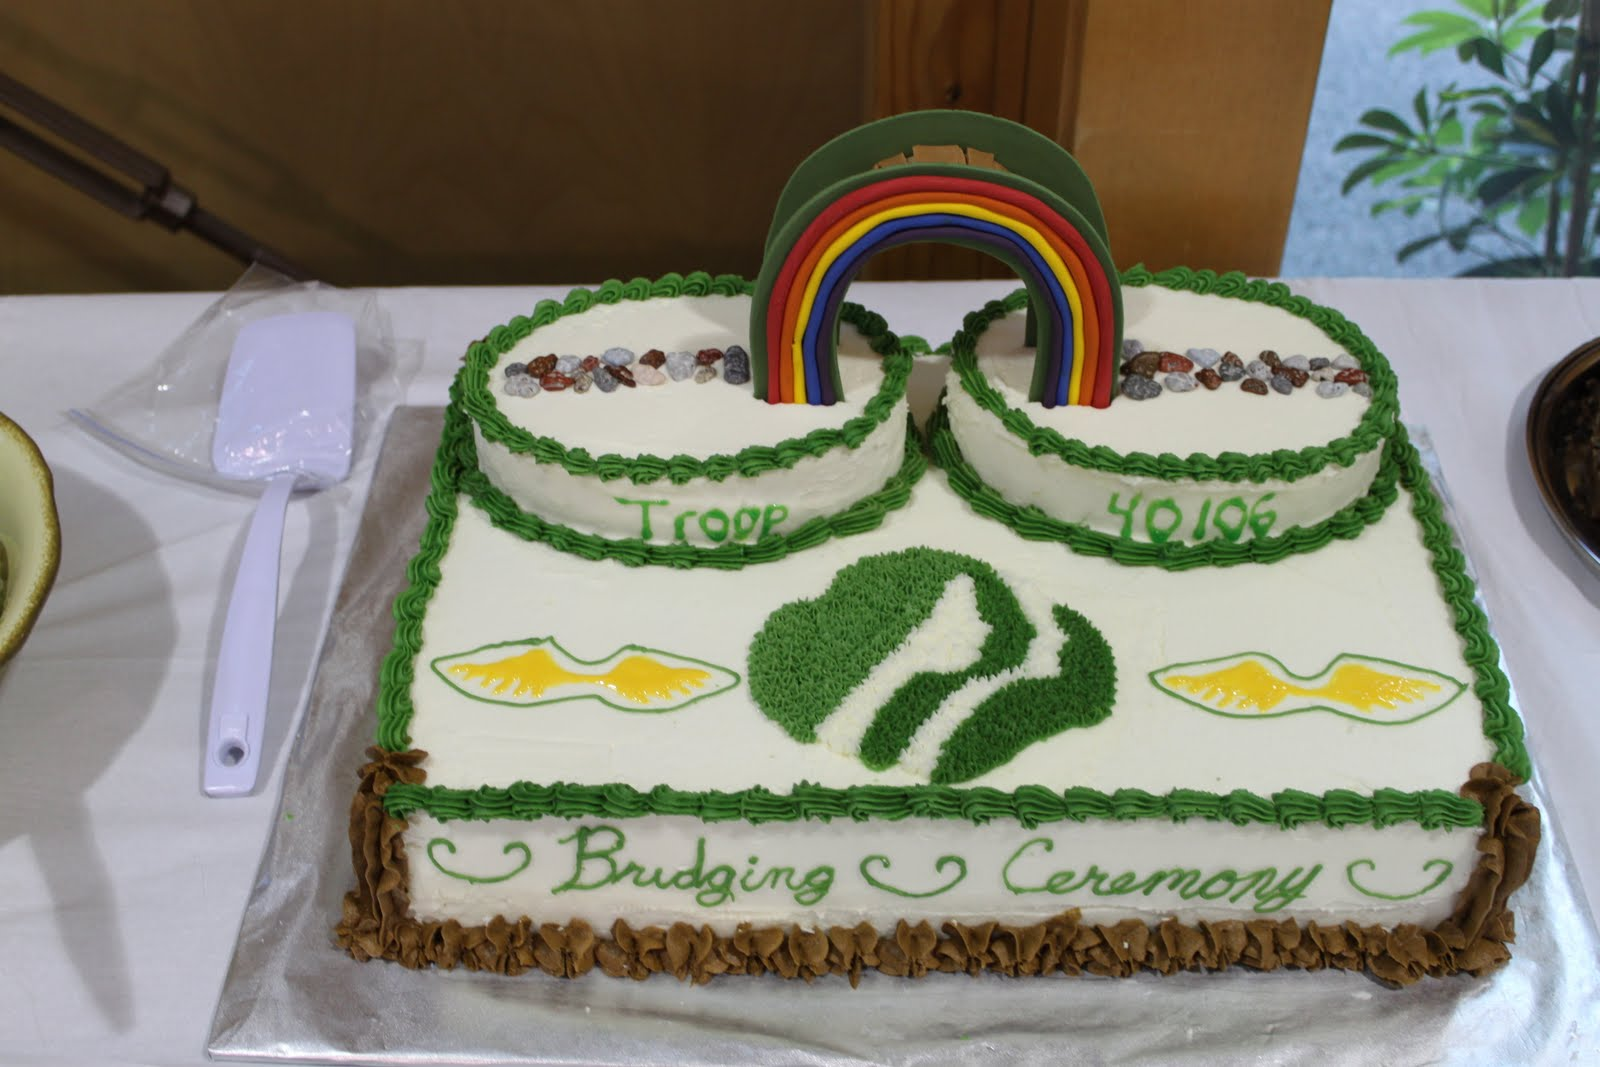 Cake Ideas For Girl Scouts : girl scouts on Pinterest Girl Scout Bridging, Troops and ...